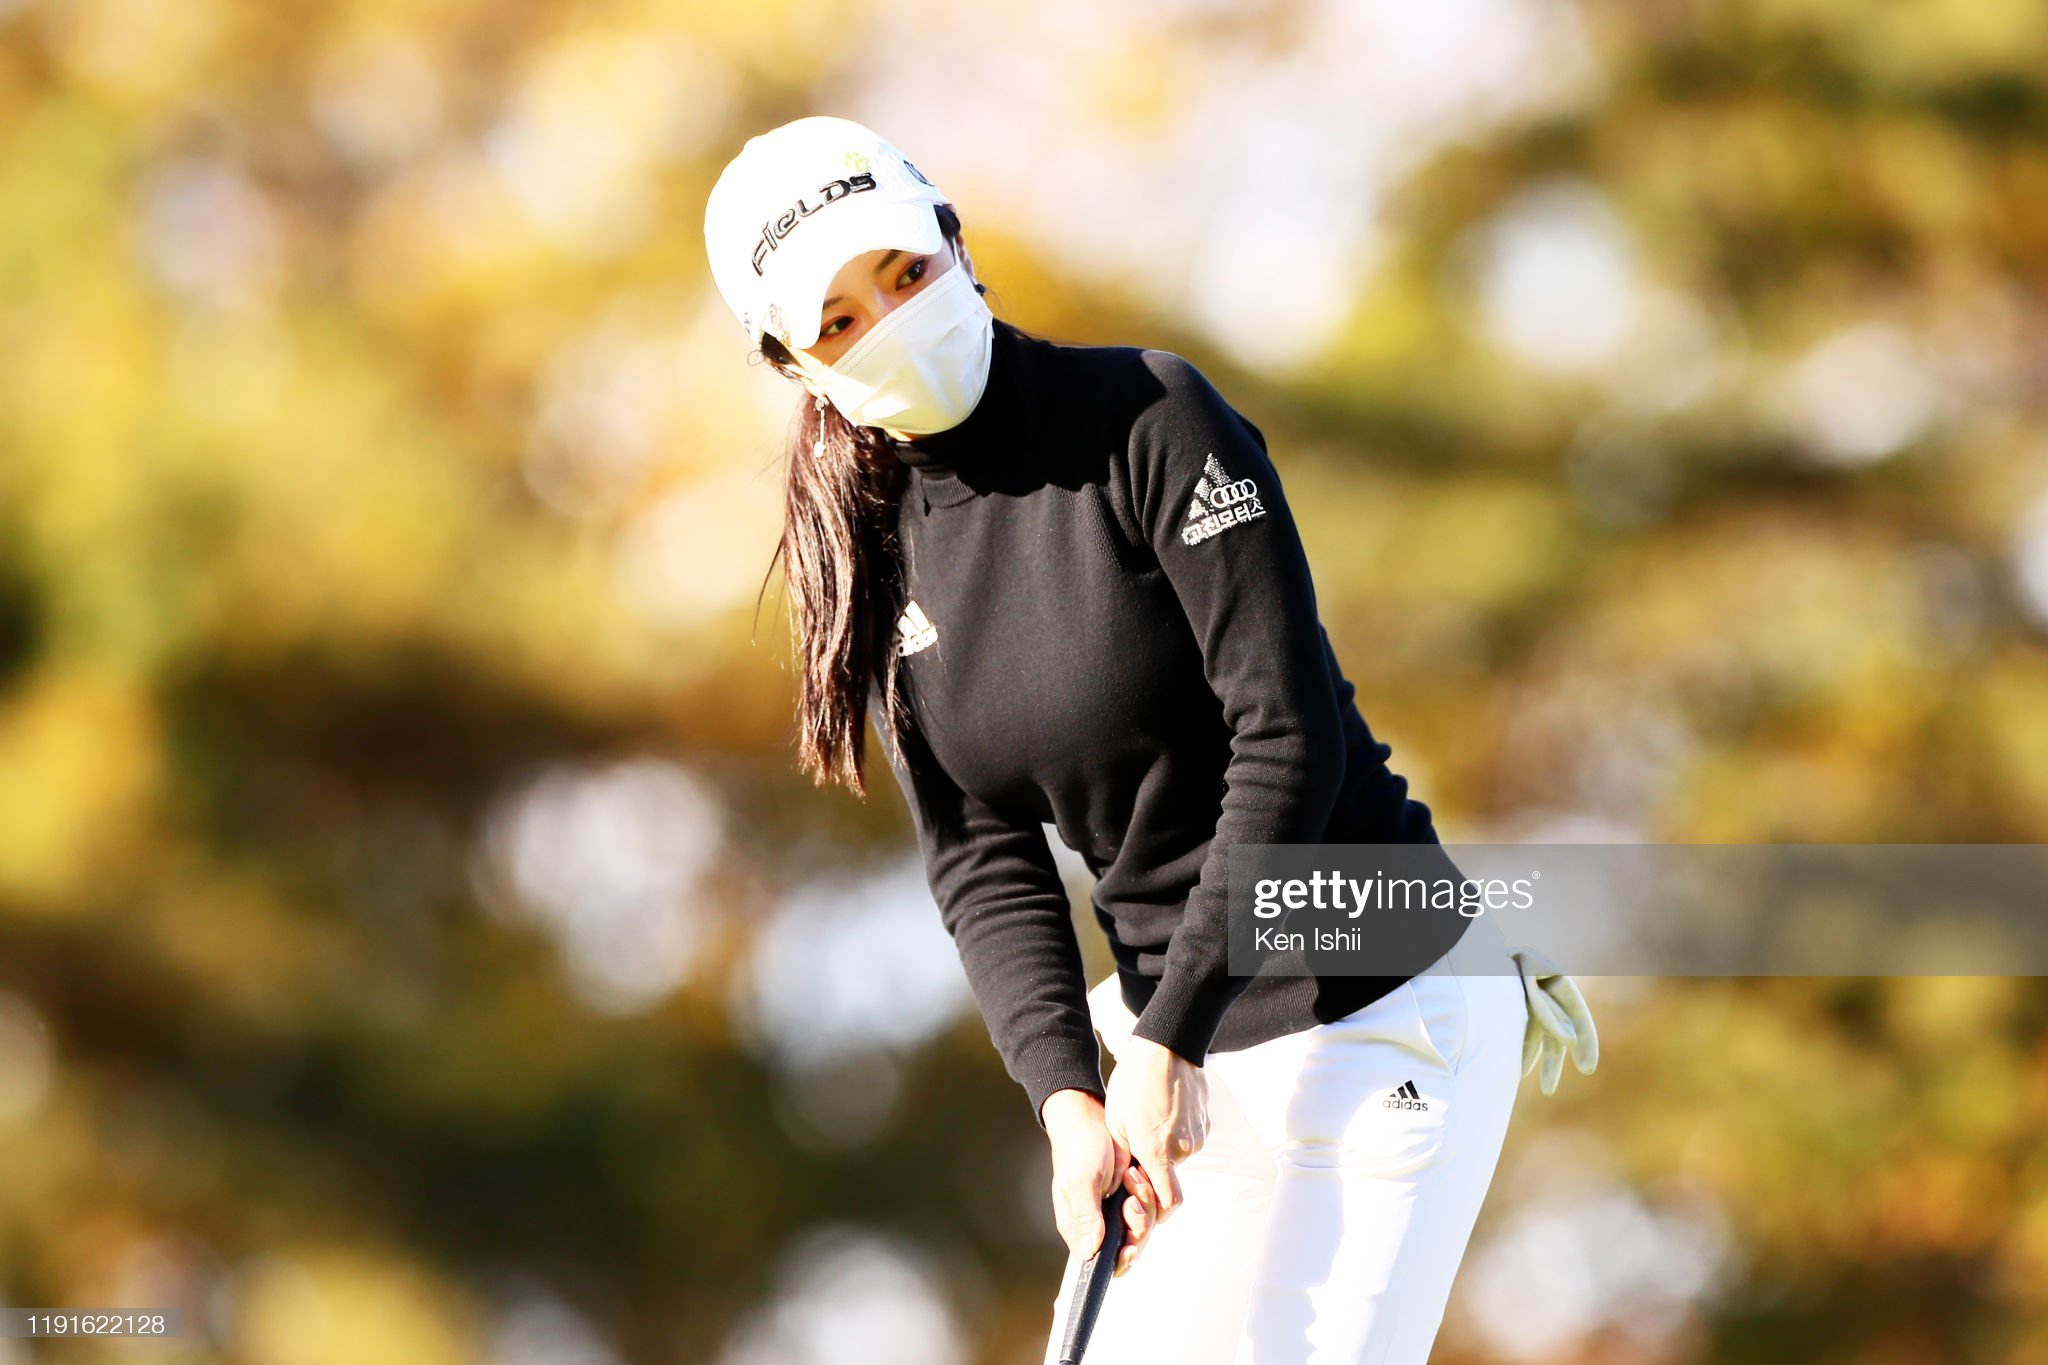 https://media.gettyimages.com/photos/shinae-ahn-of-south-korea-putts-on-the-7th-green-during-the-first-of-picture-id1191622128?s=2048x2048